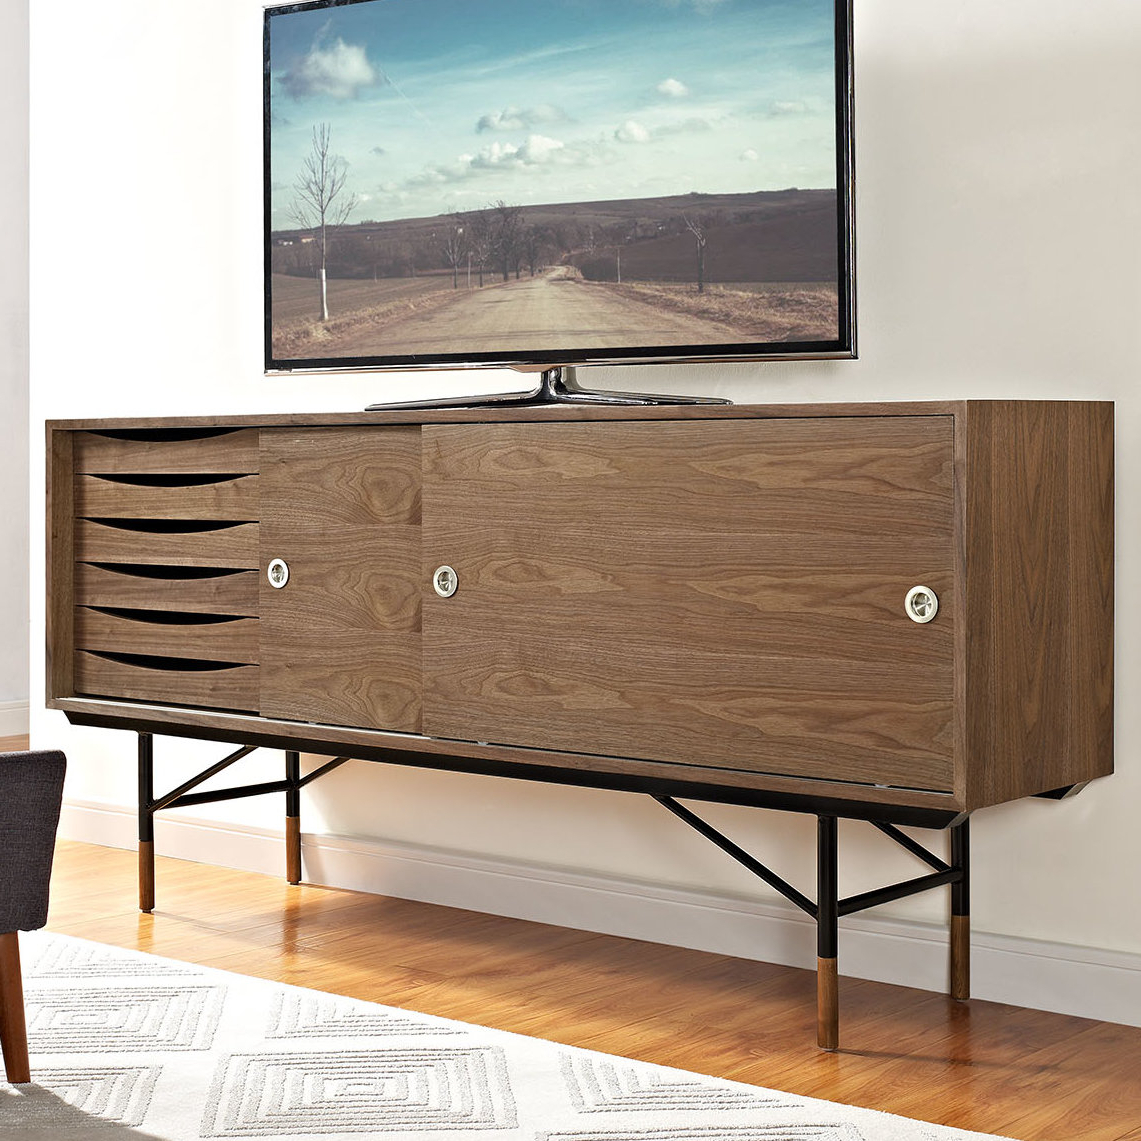 Wayfair For Mid Burnt Oak 71 Inch Sideboards (View 19 of 20)